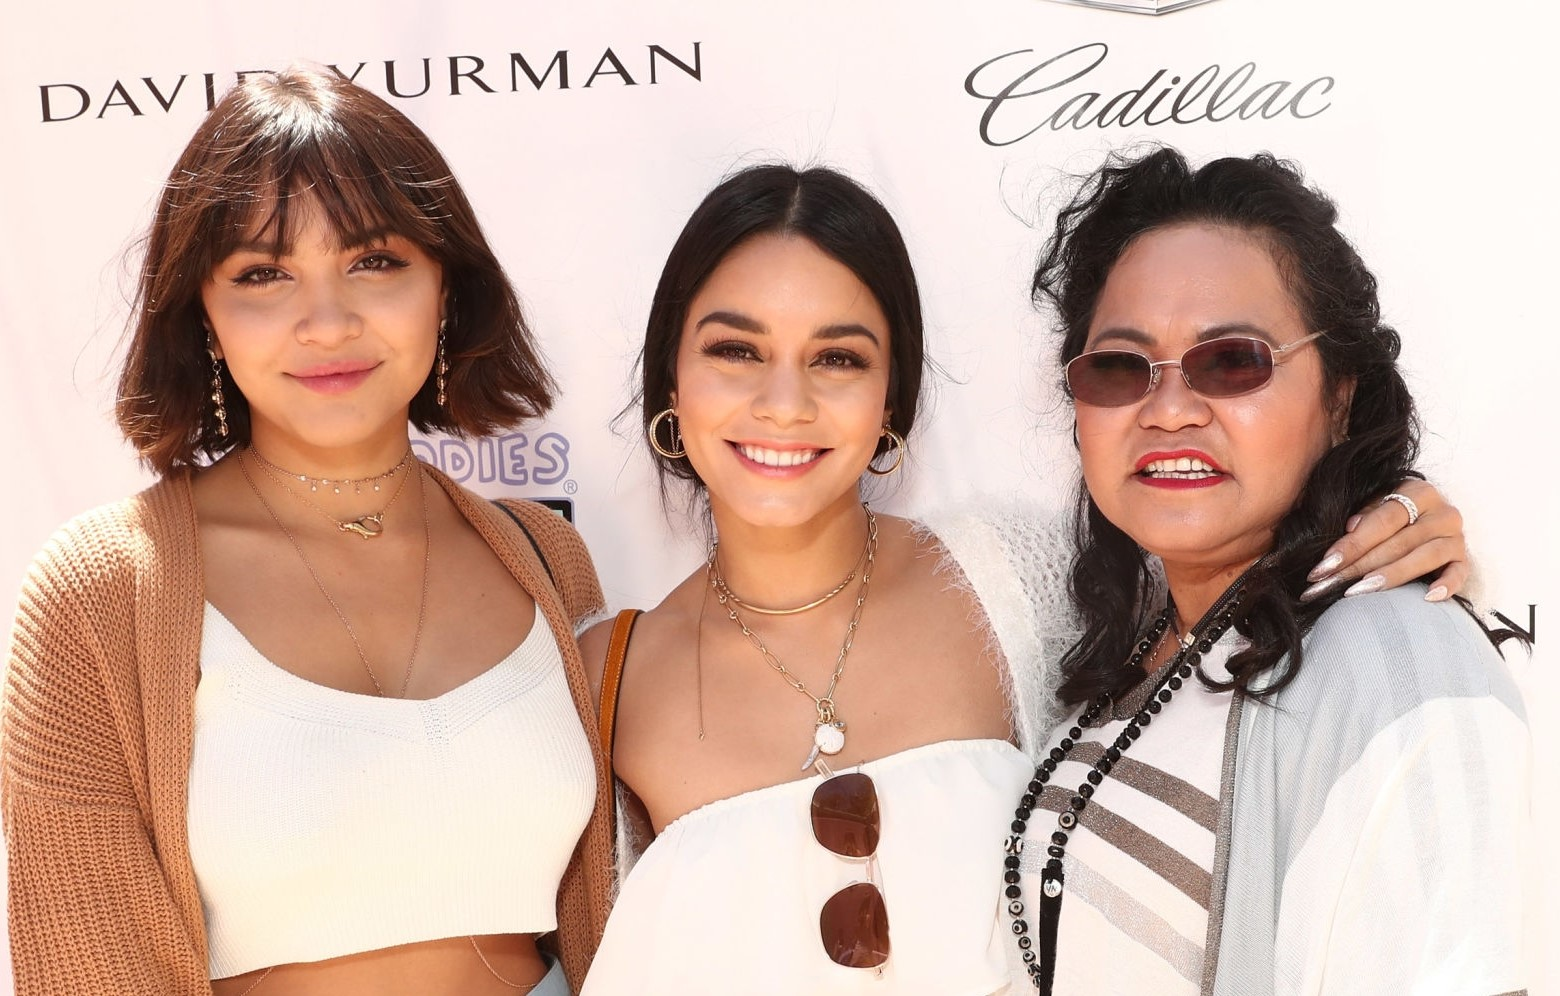 Gina with her two daughters, Vanessa and Stella, attending an award show.